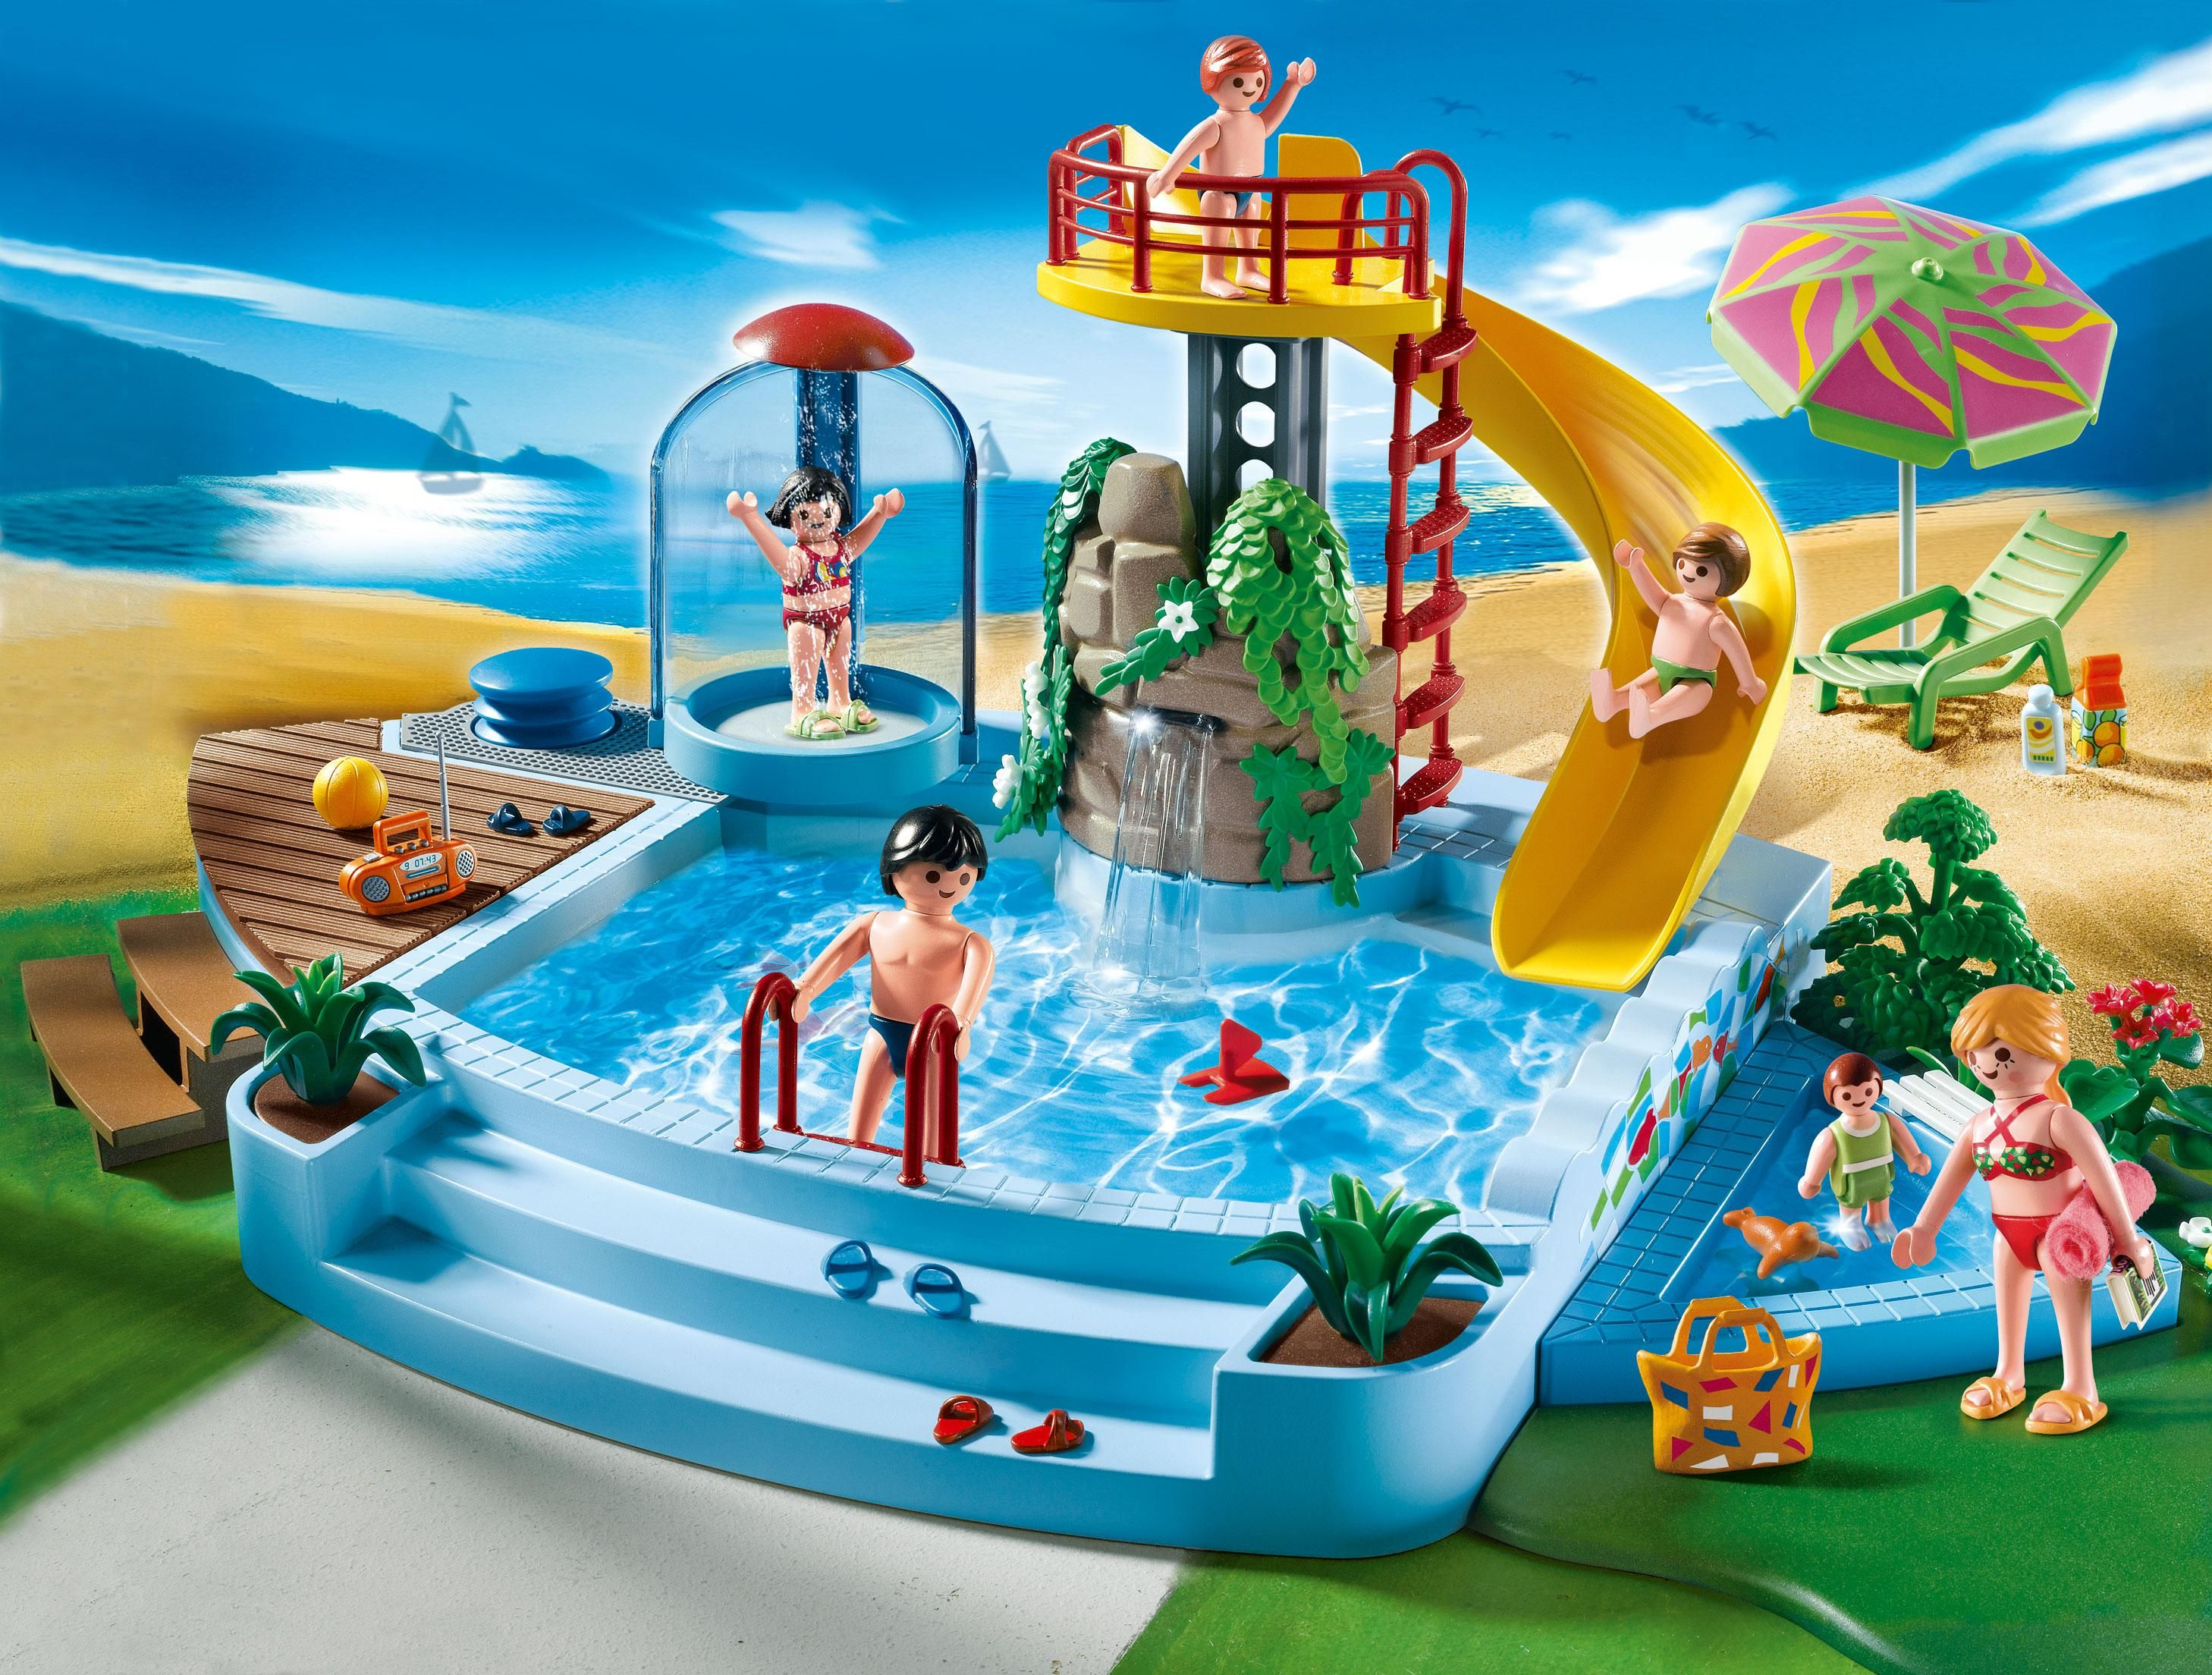 Captivating Playmobil Pool And Water Slide. So Cute.